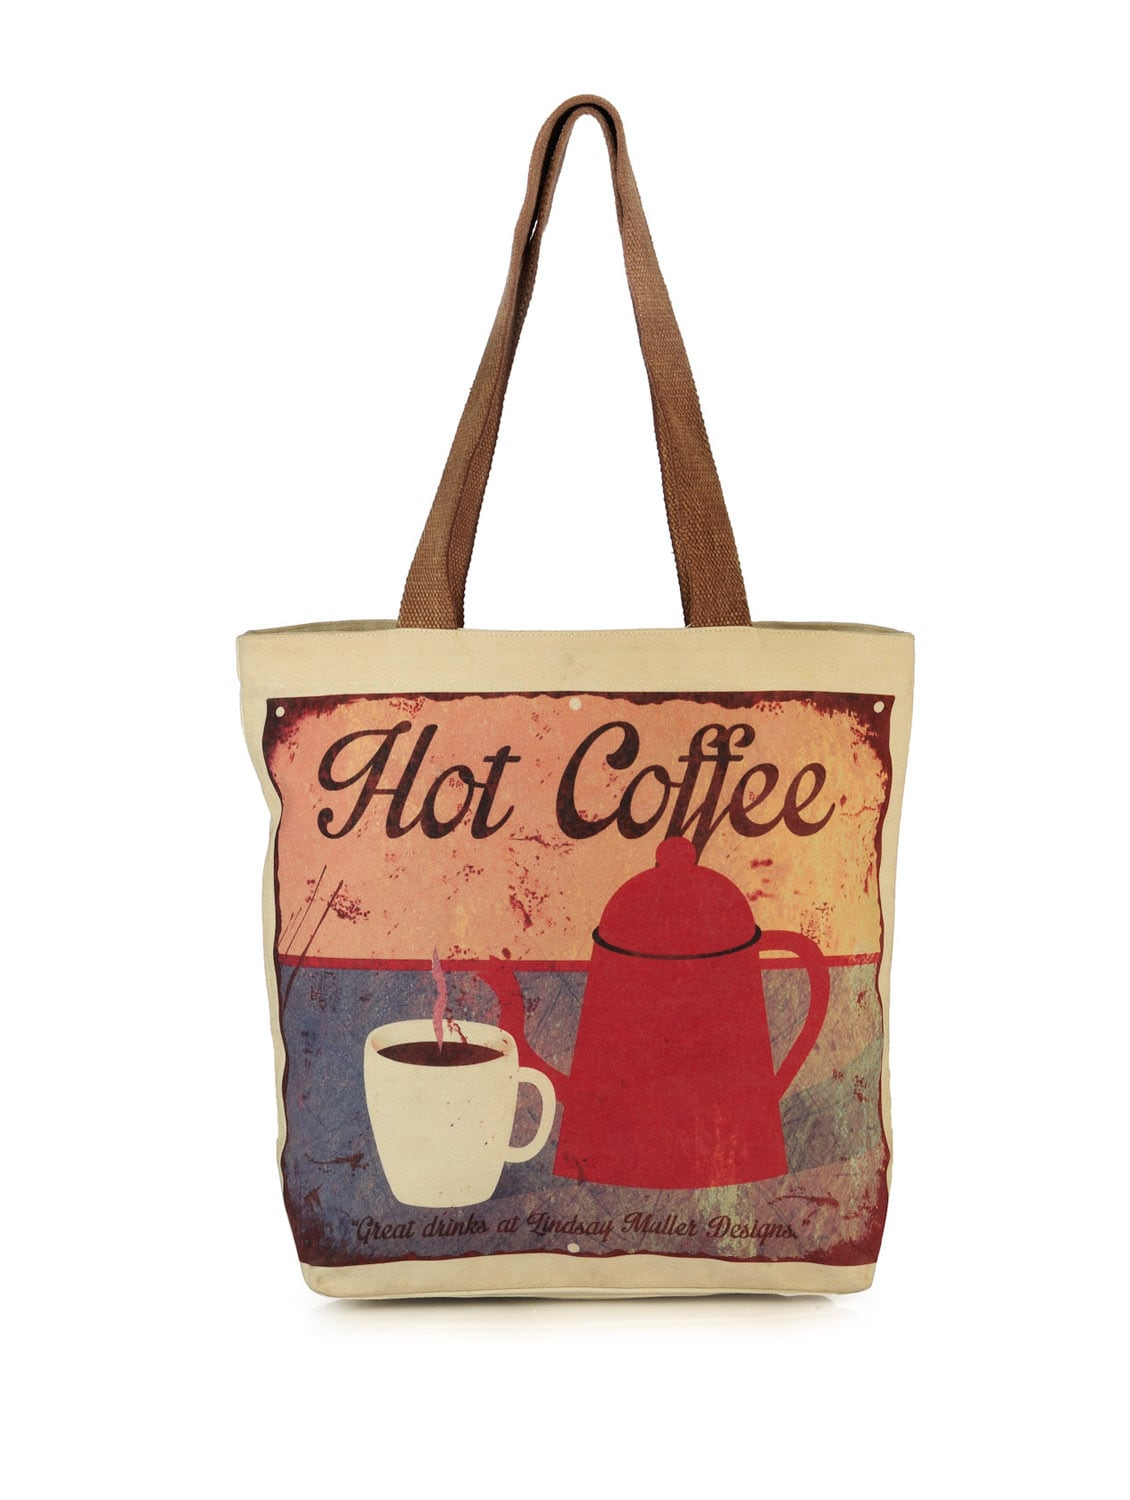 Hot Coffee Handbag - The House Of Tara